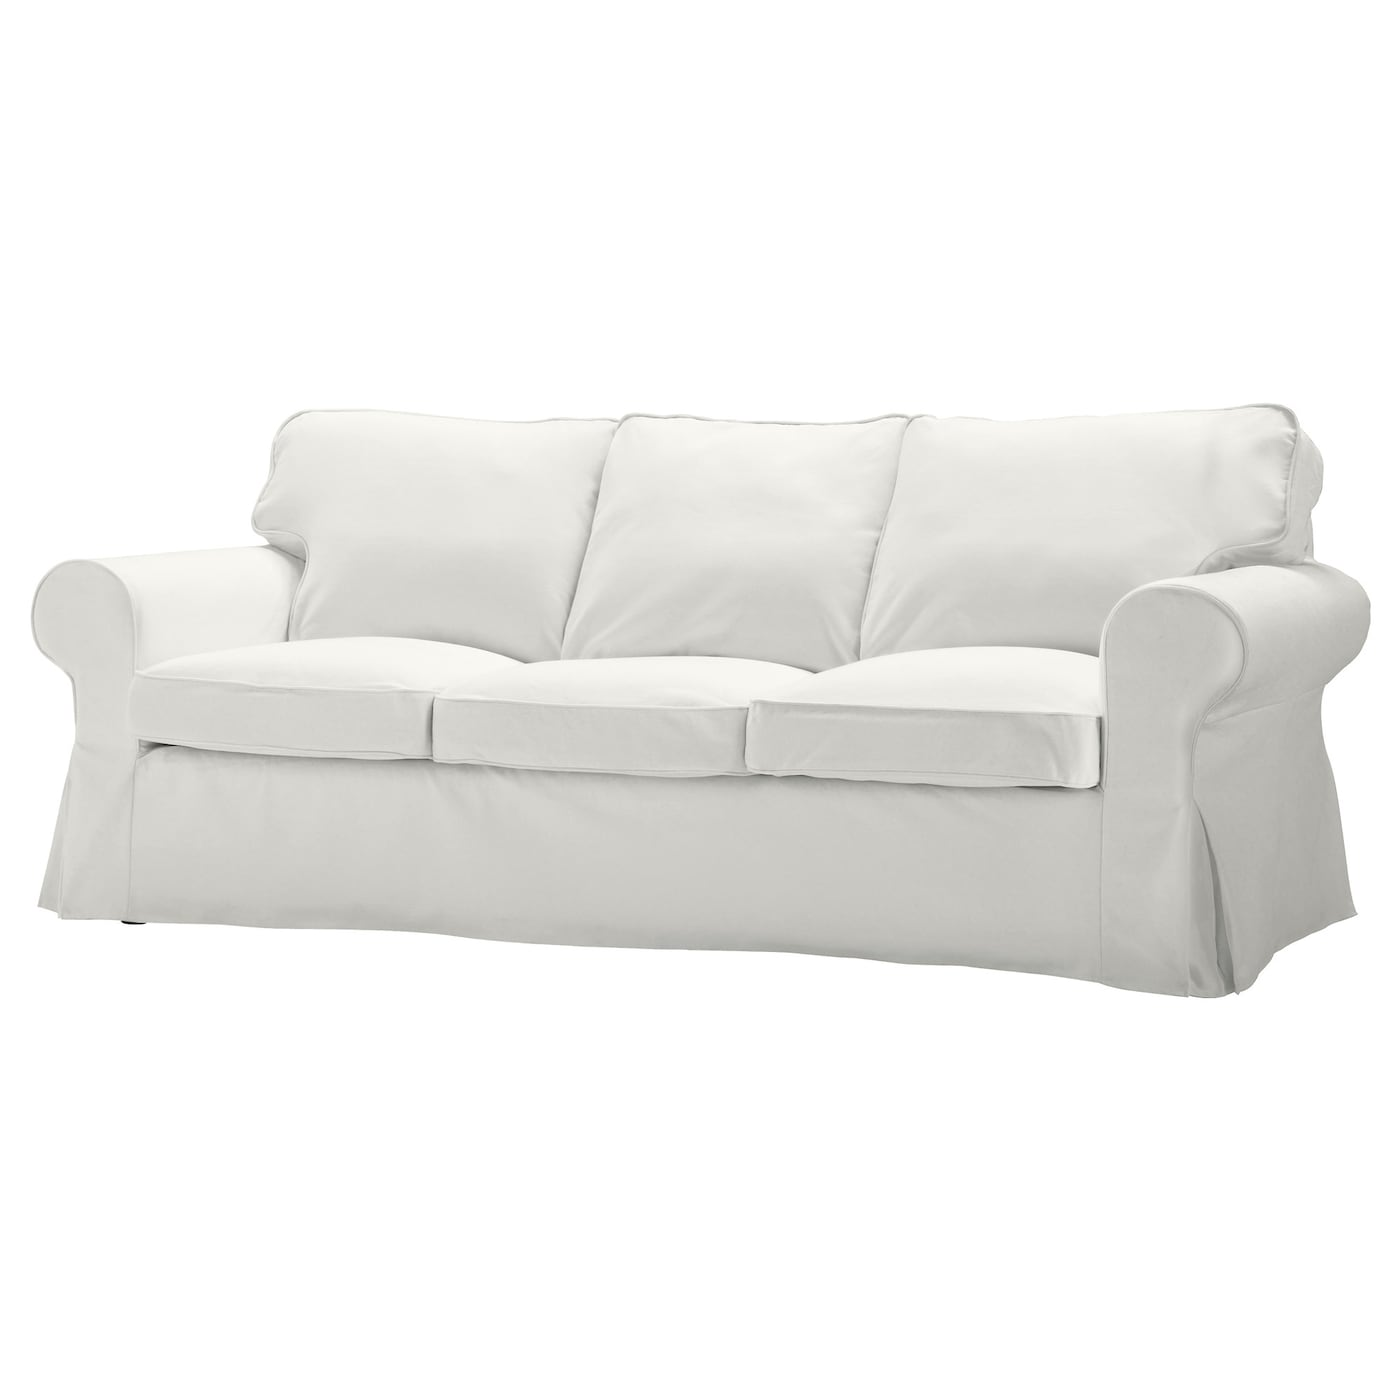 ektorp threeseat sofa blekinge white  ikea - ikea ektorp threeseat sofa  year guarantee read about the terms in the